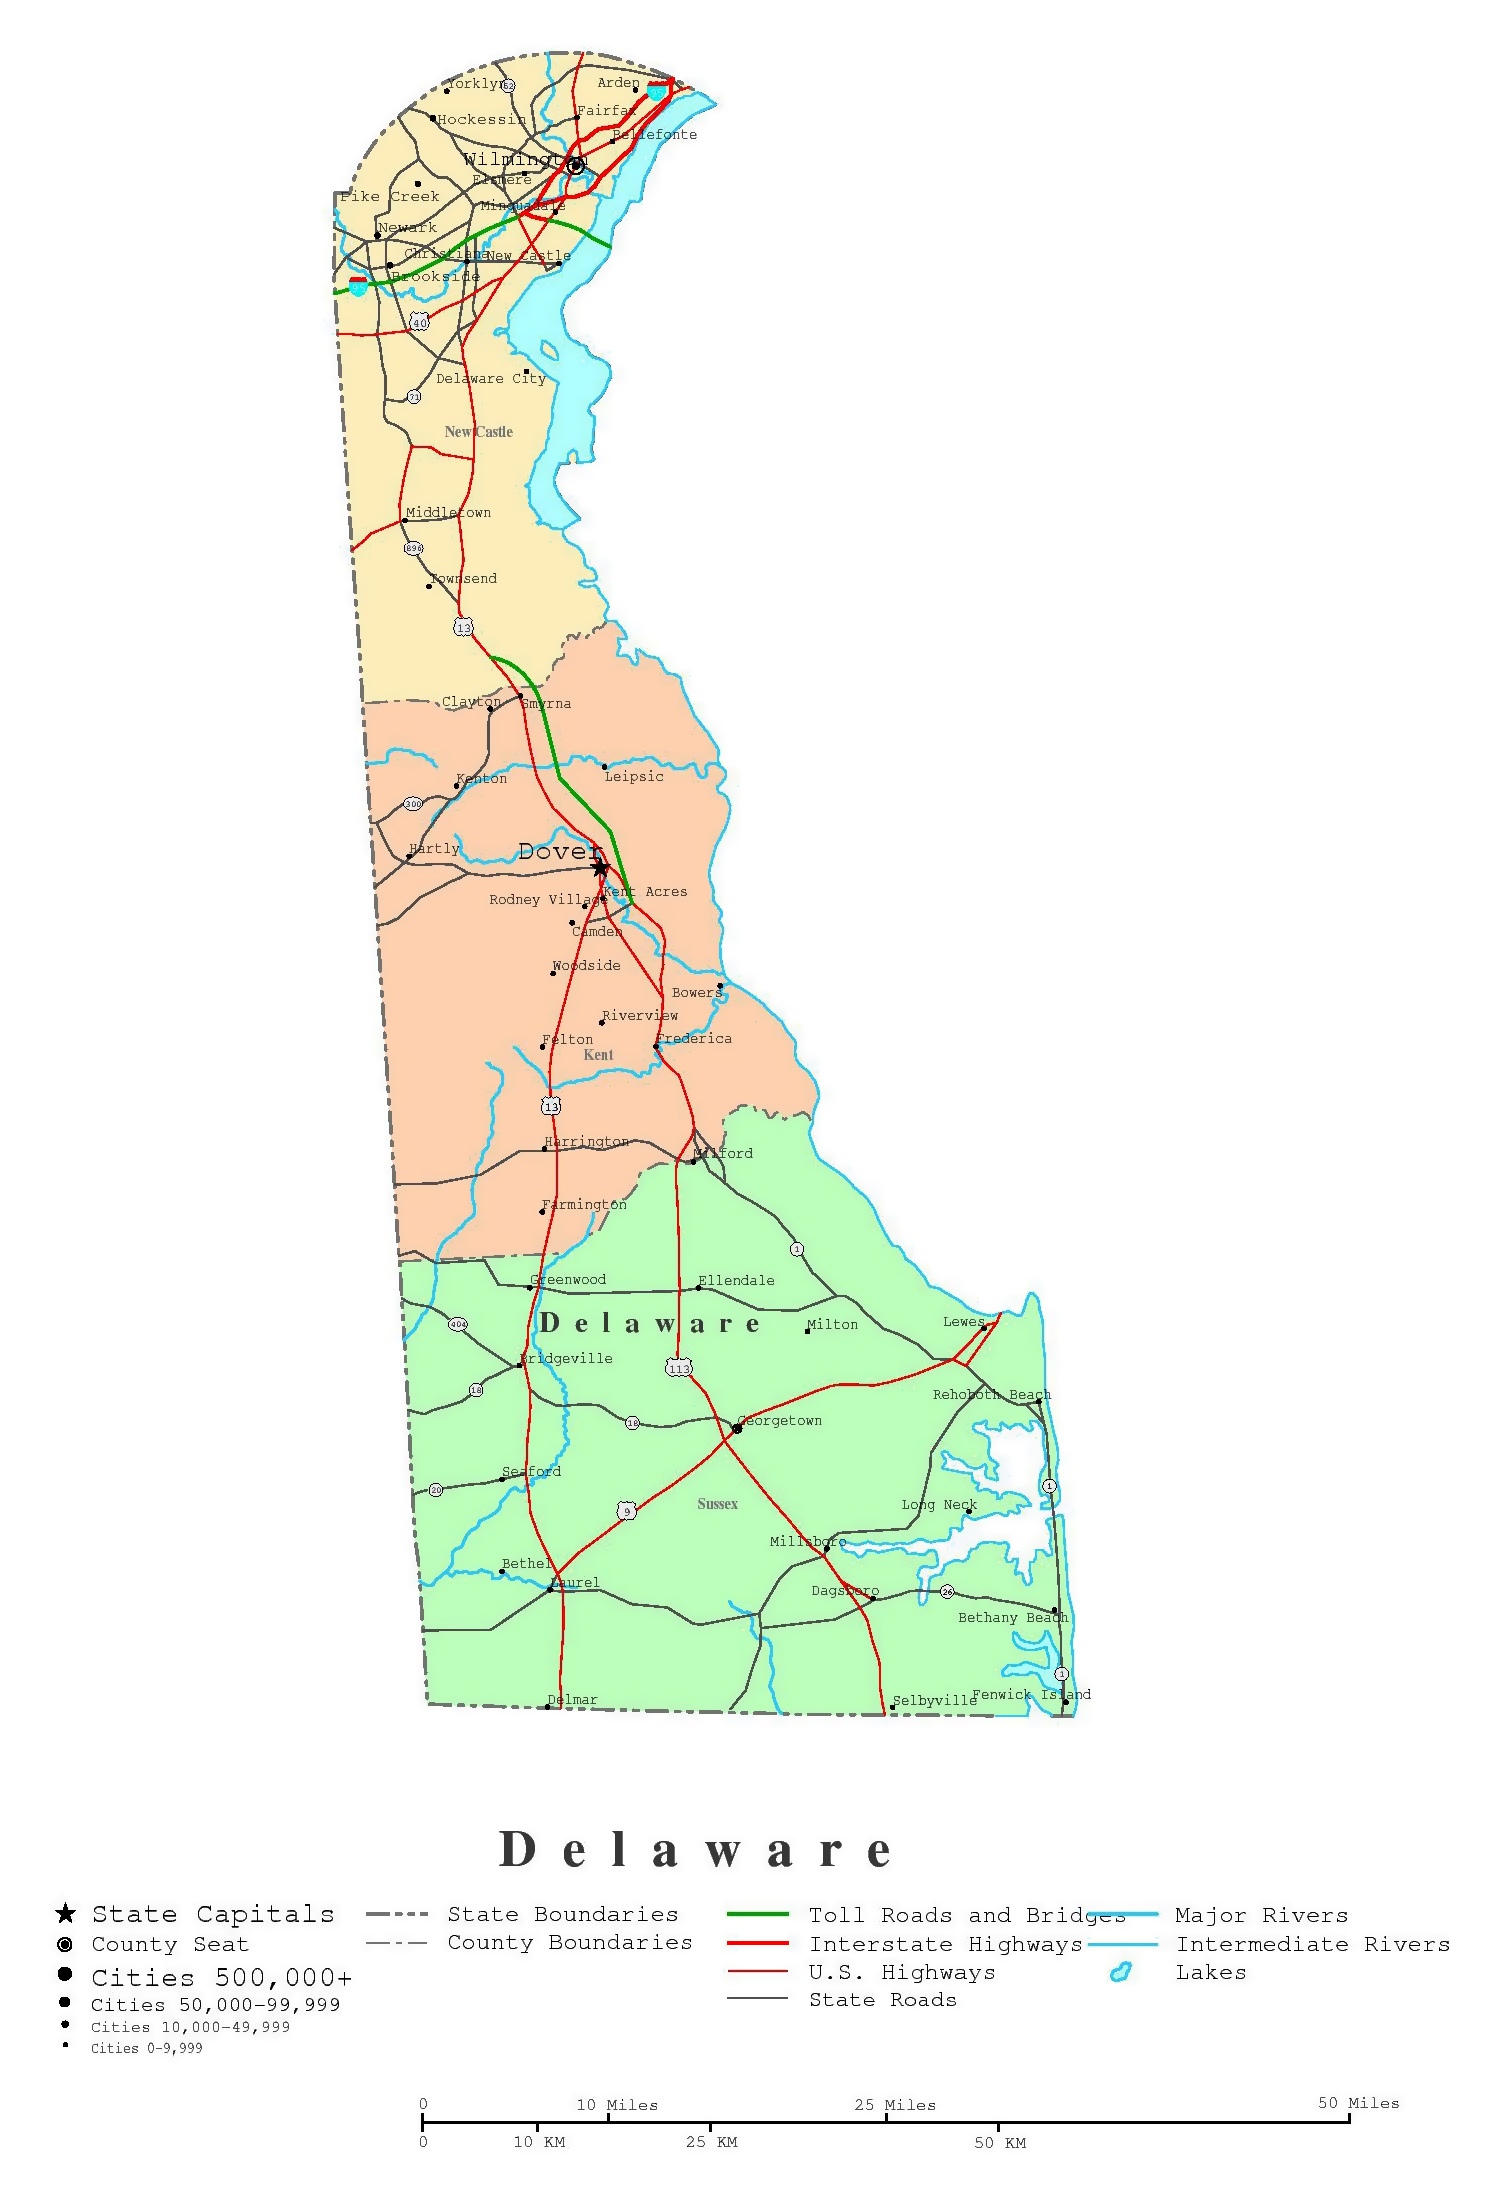 Large Detailed Administrative Map Of Delaware State With Roads - Delaware cities map